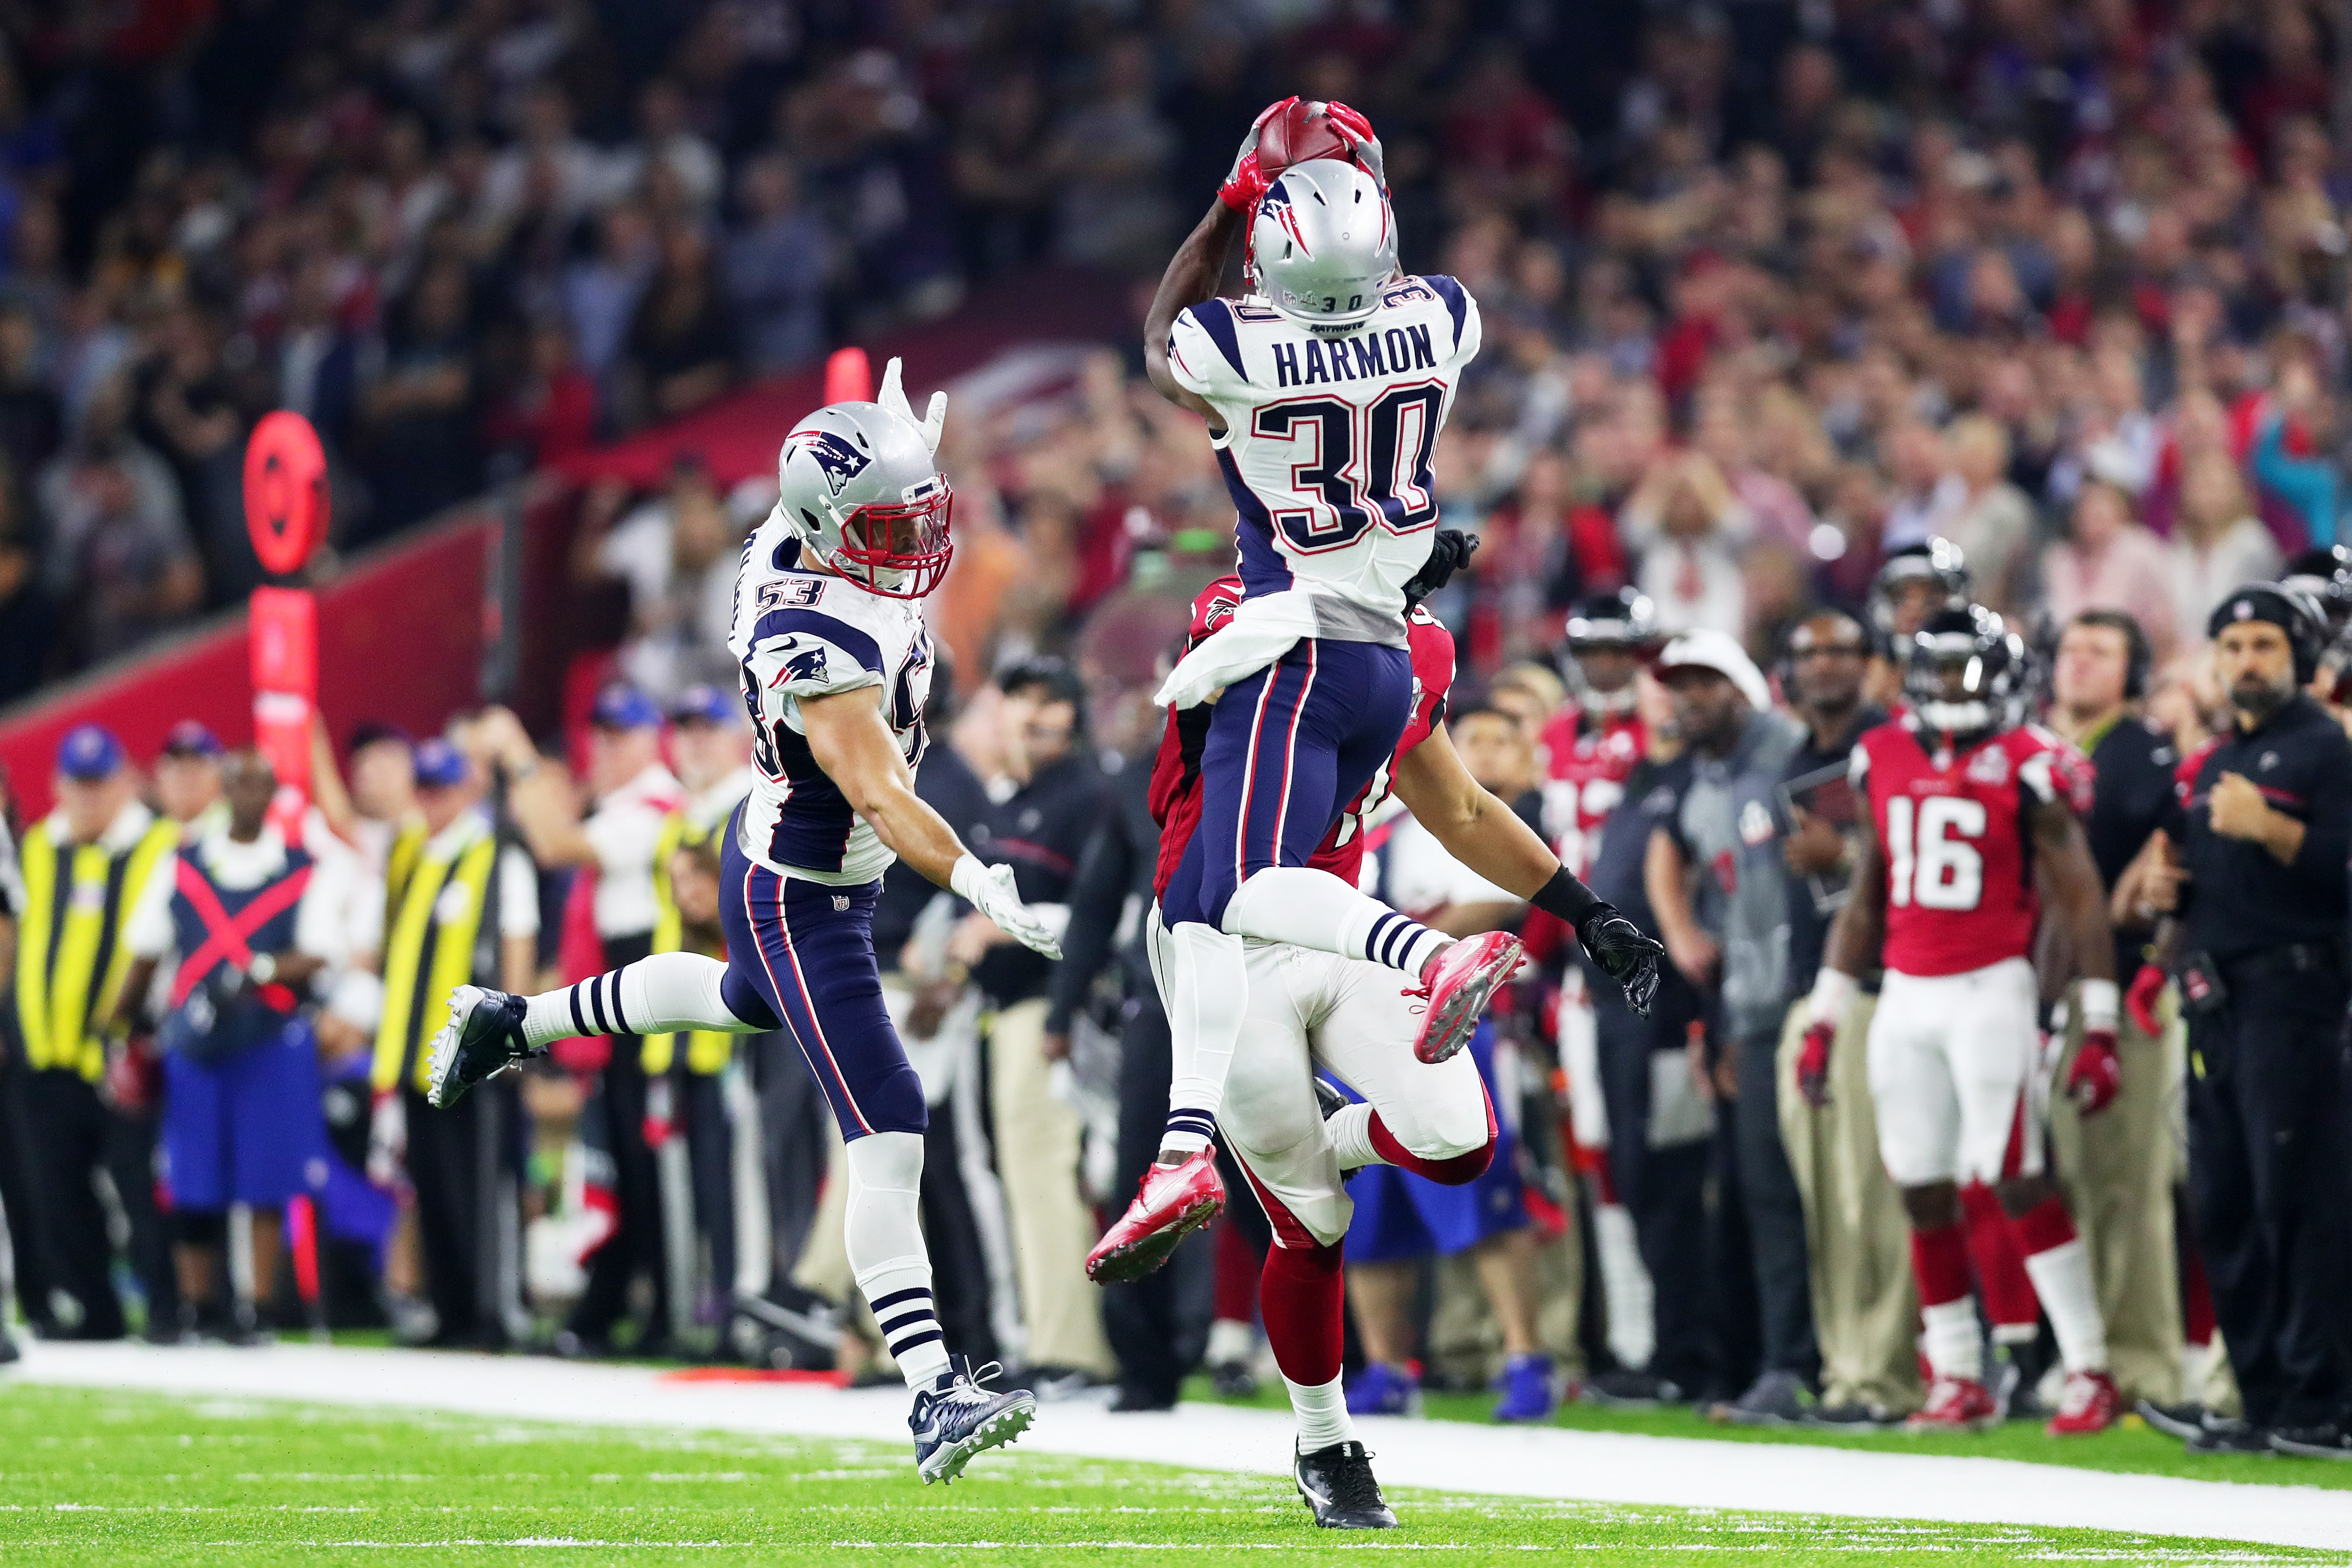 HOUSTON, TX - New England Patriots free safety Duron Harmon (30) nearly bags an interception off of an errant Matt Ryan throw in the fourth quarter against the Atlanta Falcons during Super Bowl 51 at NRG Stadium.